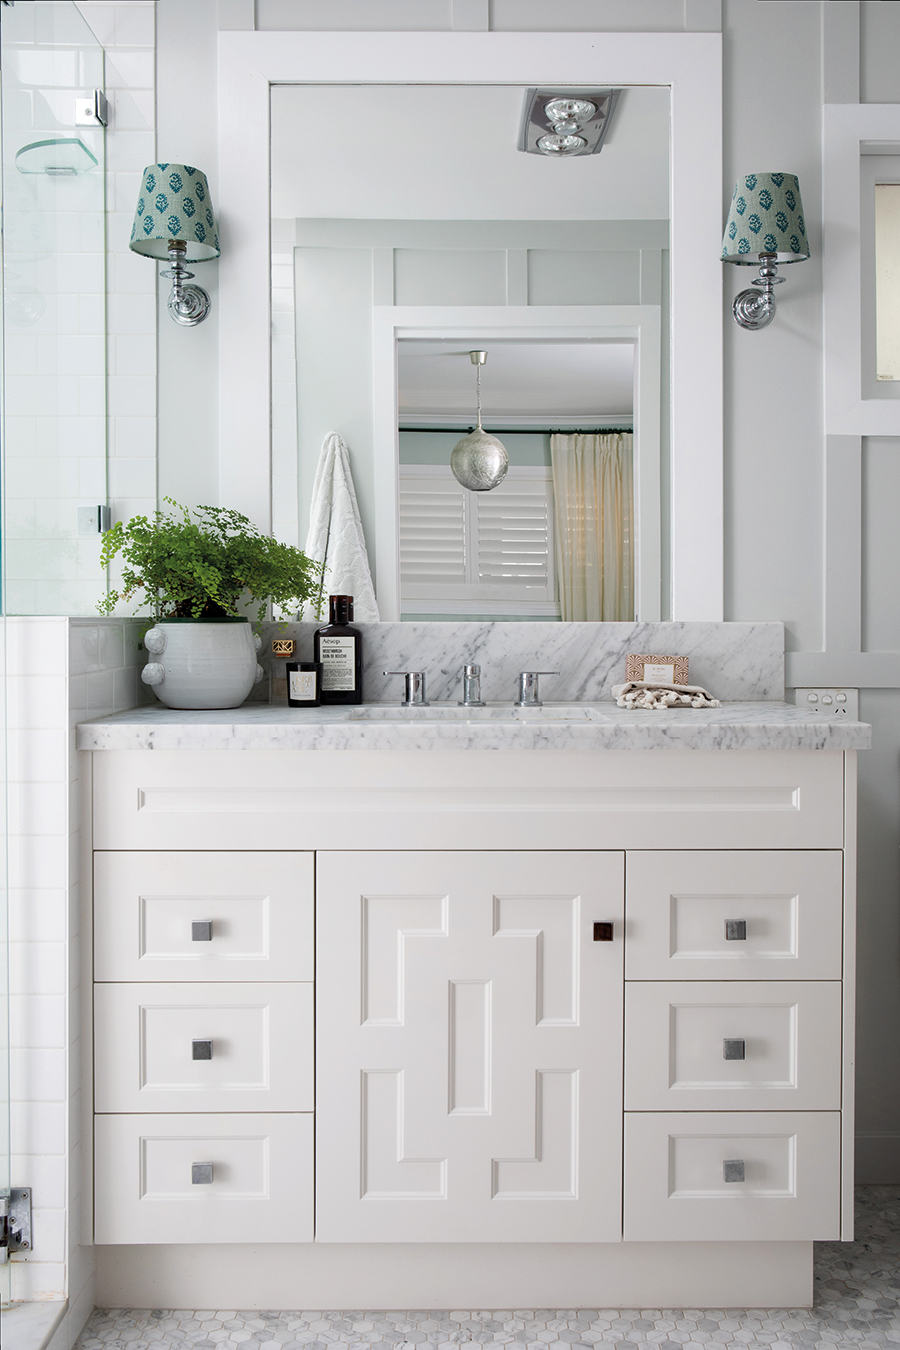 Porch Light Interiors bathroom design